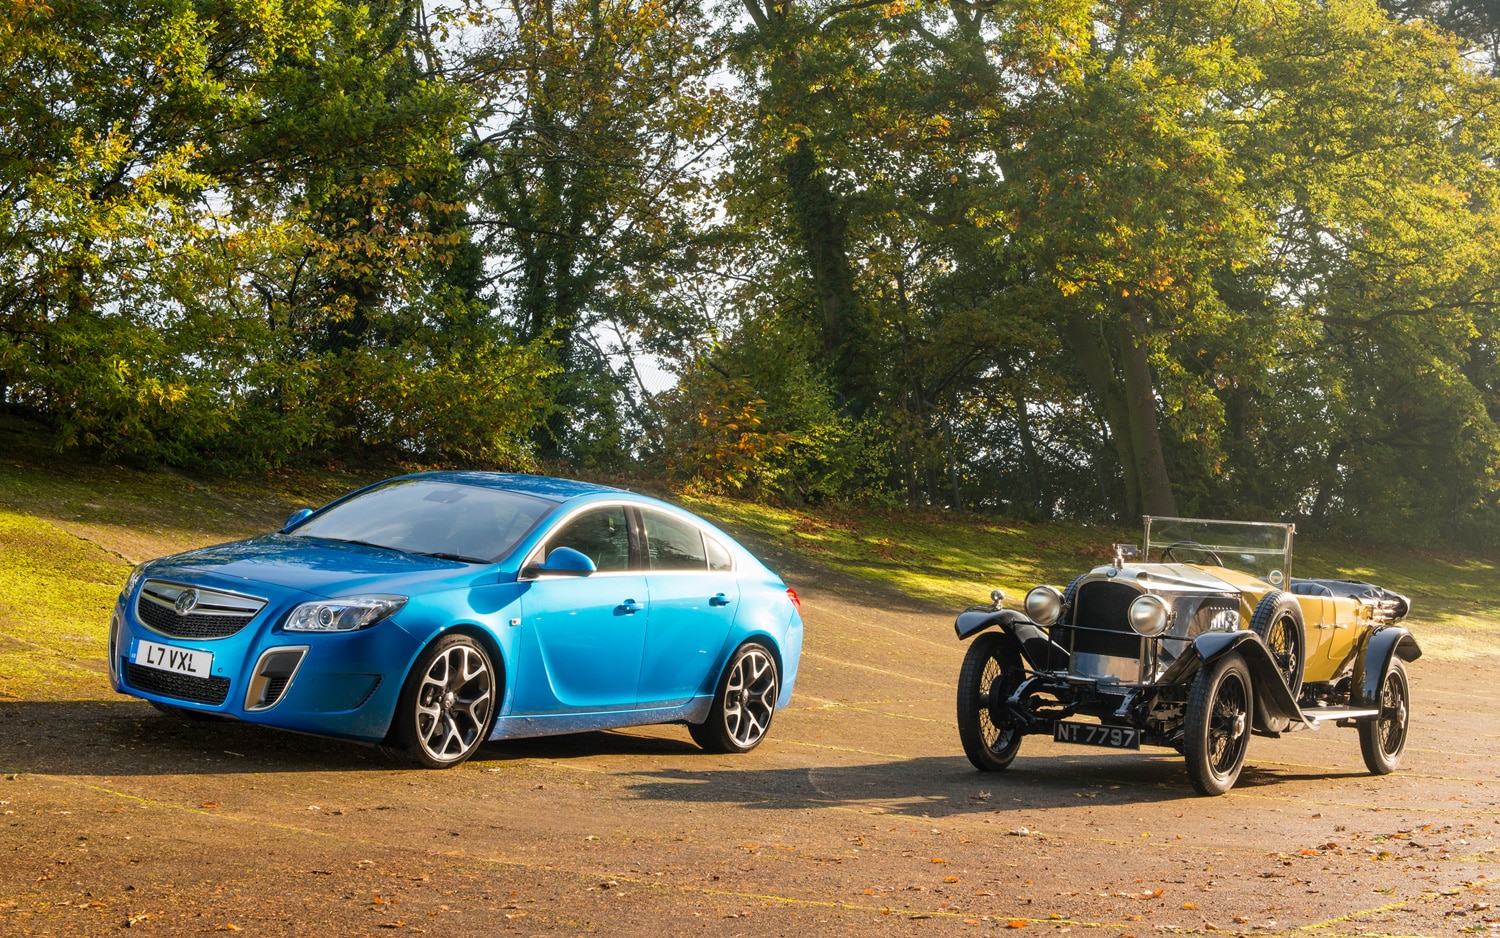 Vauxhall Insignia VXR SuperSport And 1926 Vauxhall 30 98 11